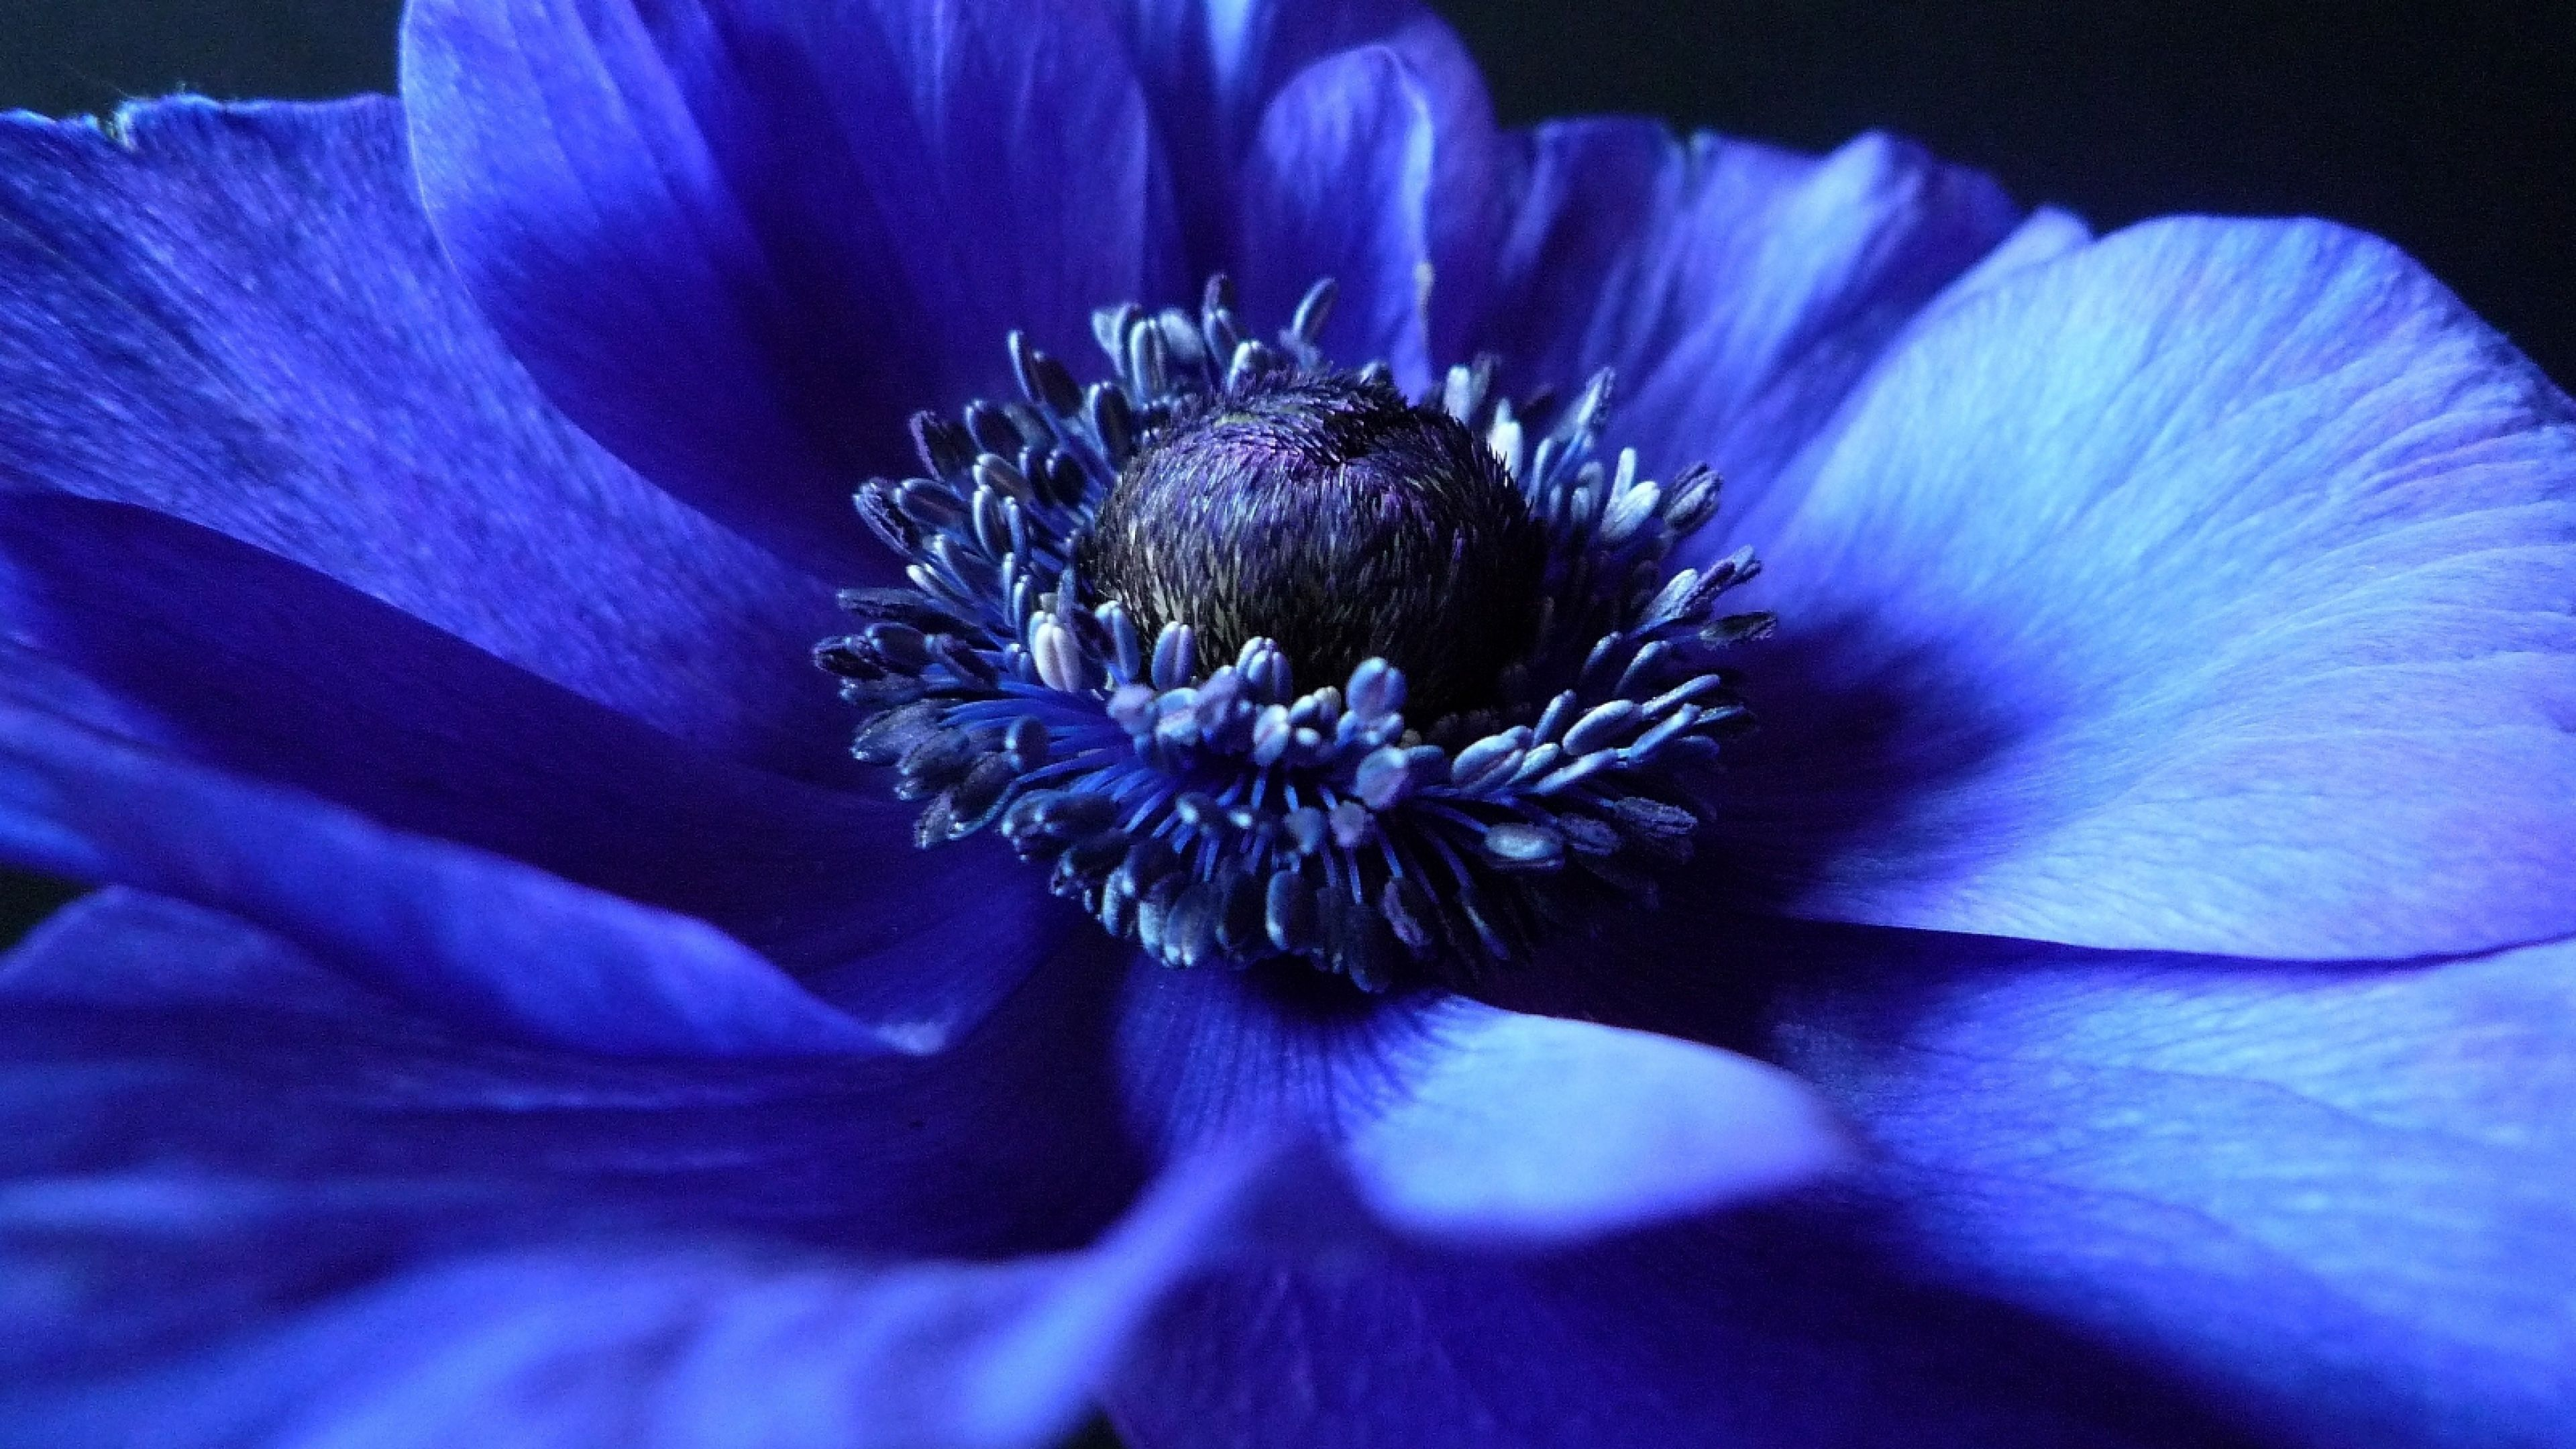 macro hd wallpaper ultra blue - photo #11